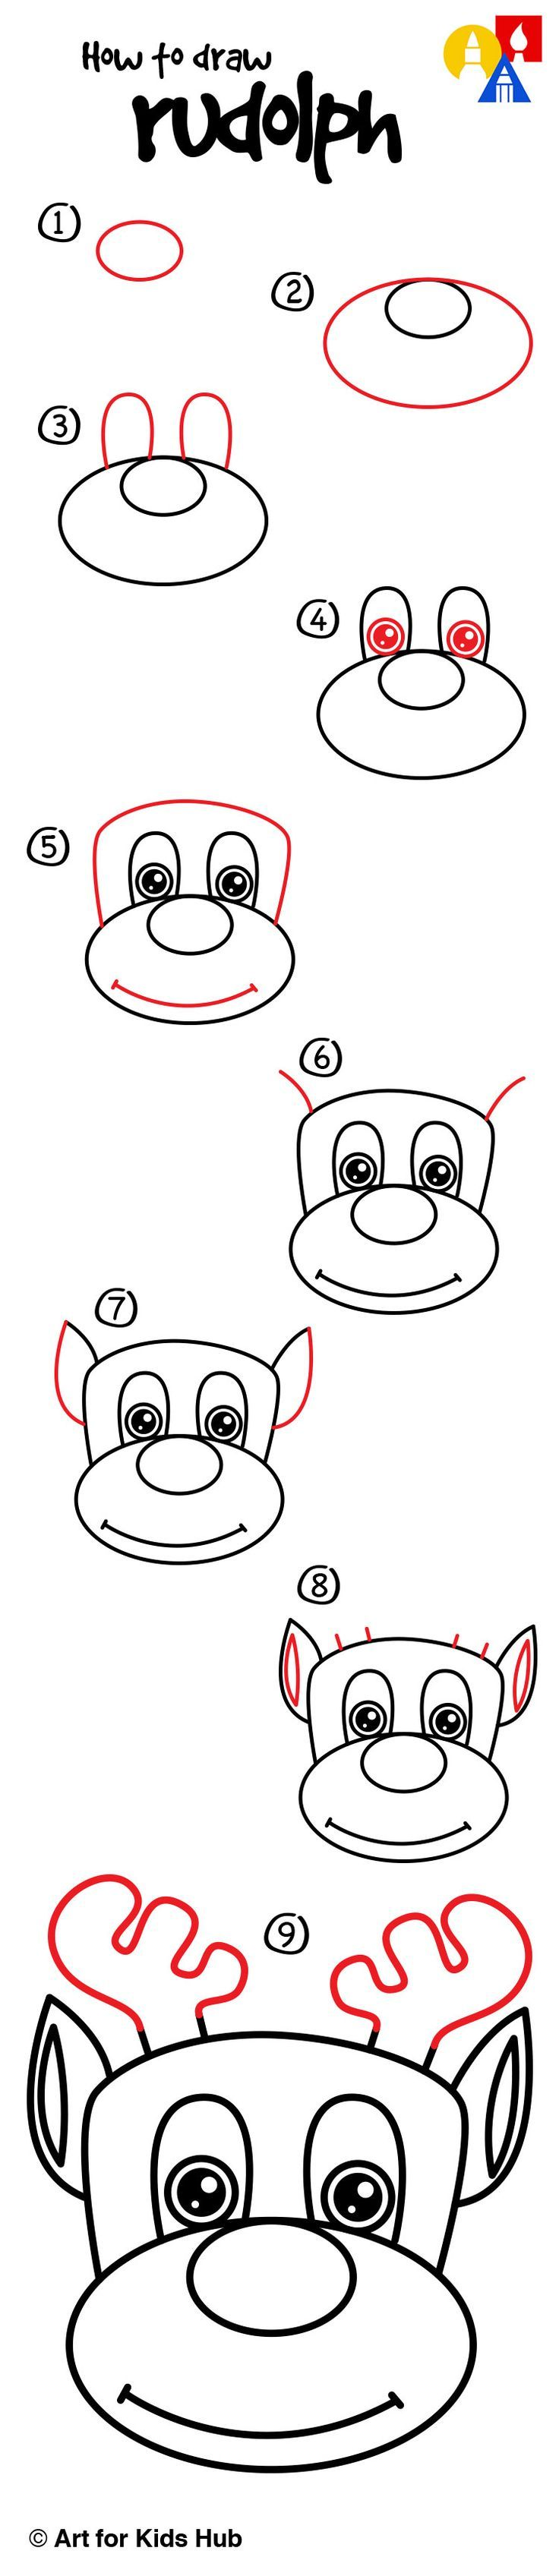 62 best afkh step by steps images on pinterest easy drawings how to draw rudolph art for kids hub altavistaventures Image collections